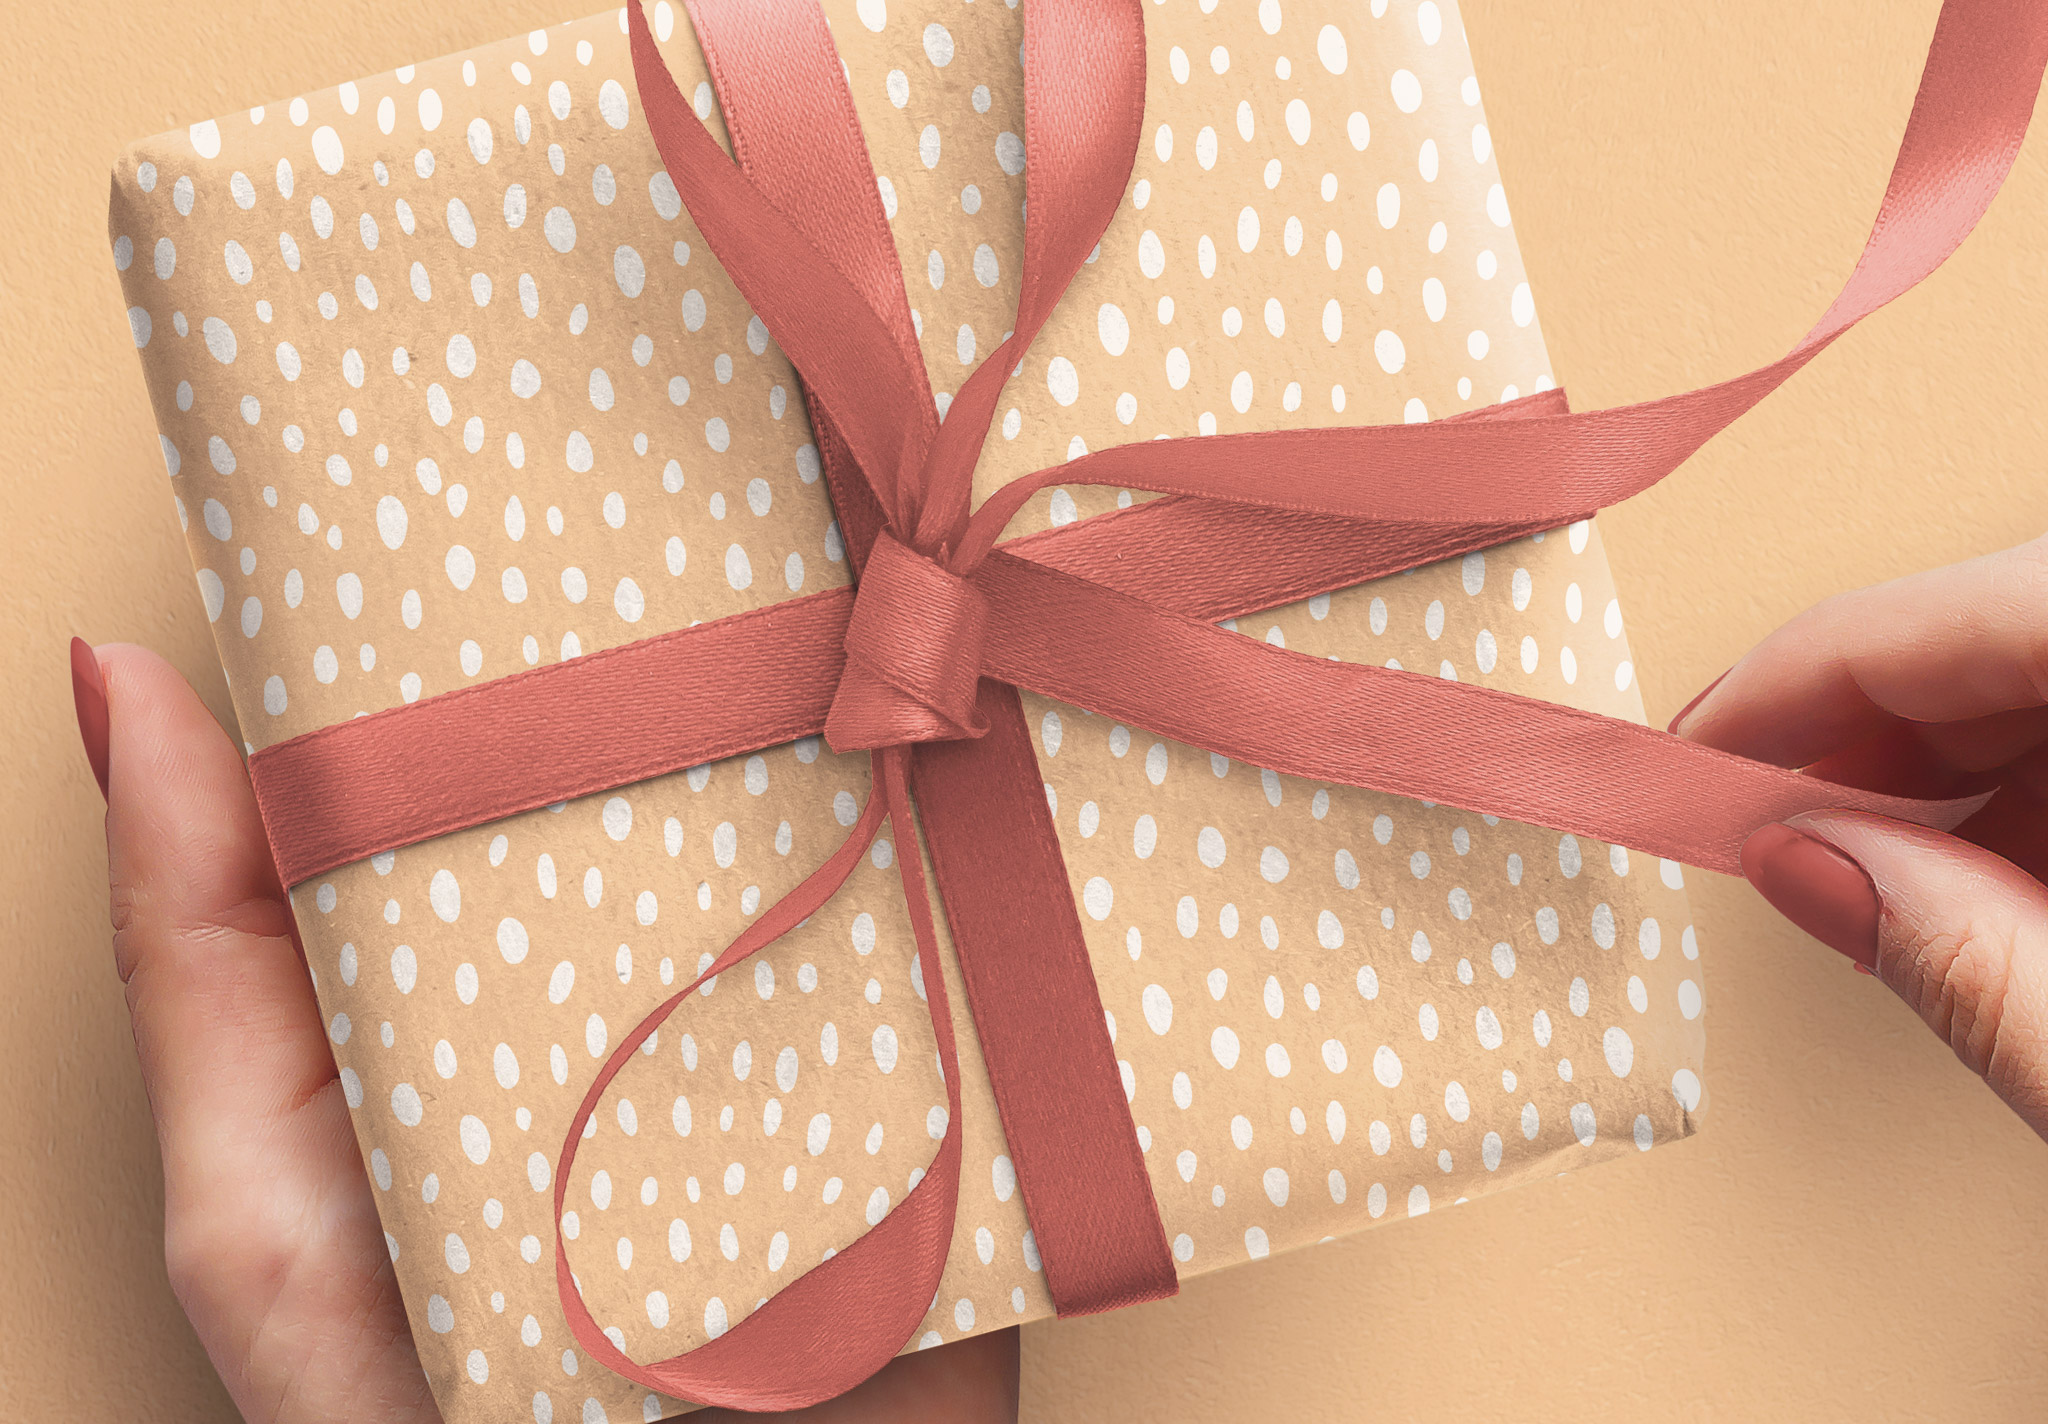 Hands Holding Gift Box image04